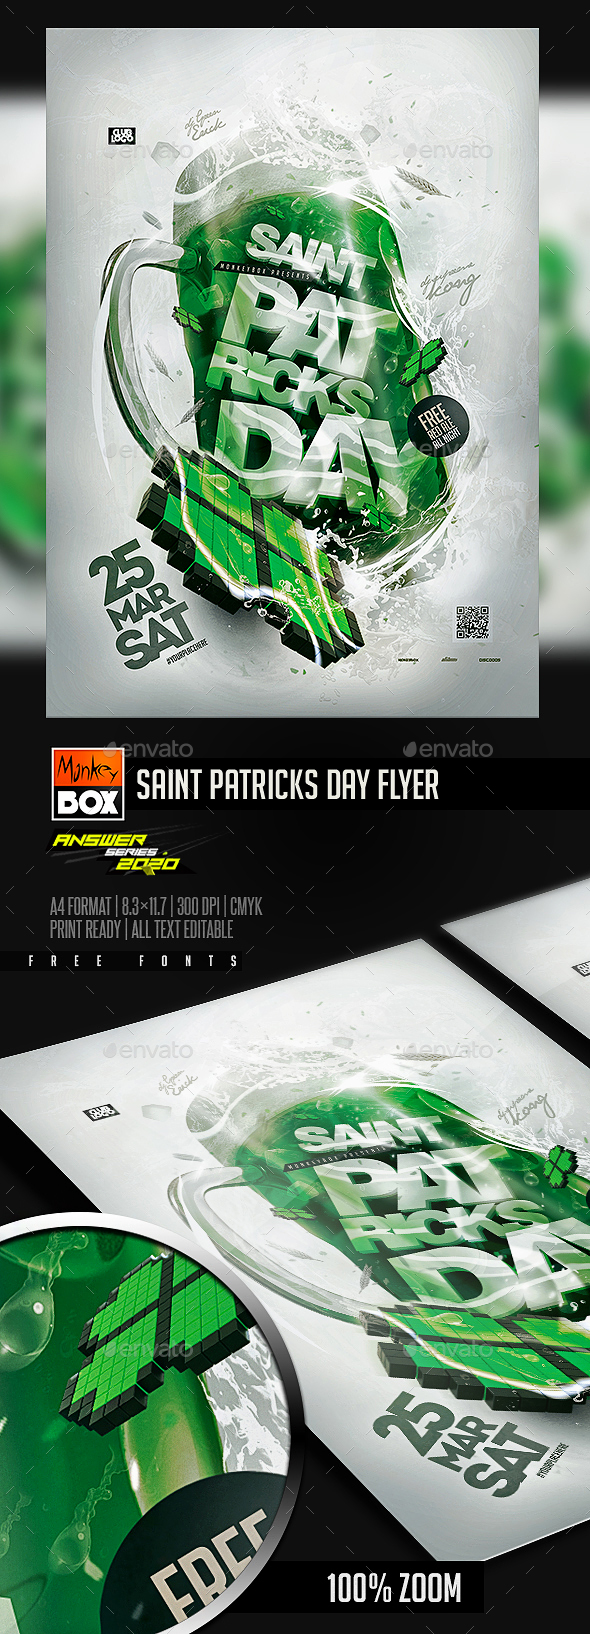 Flyers PSD – Saint Patricks Day Flyer  – Download